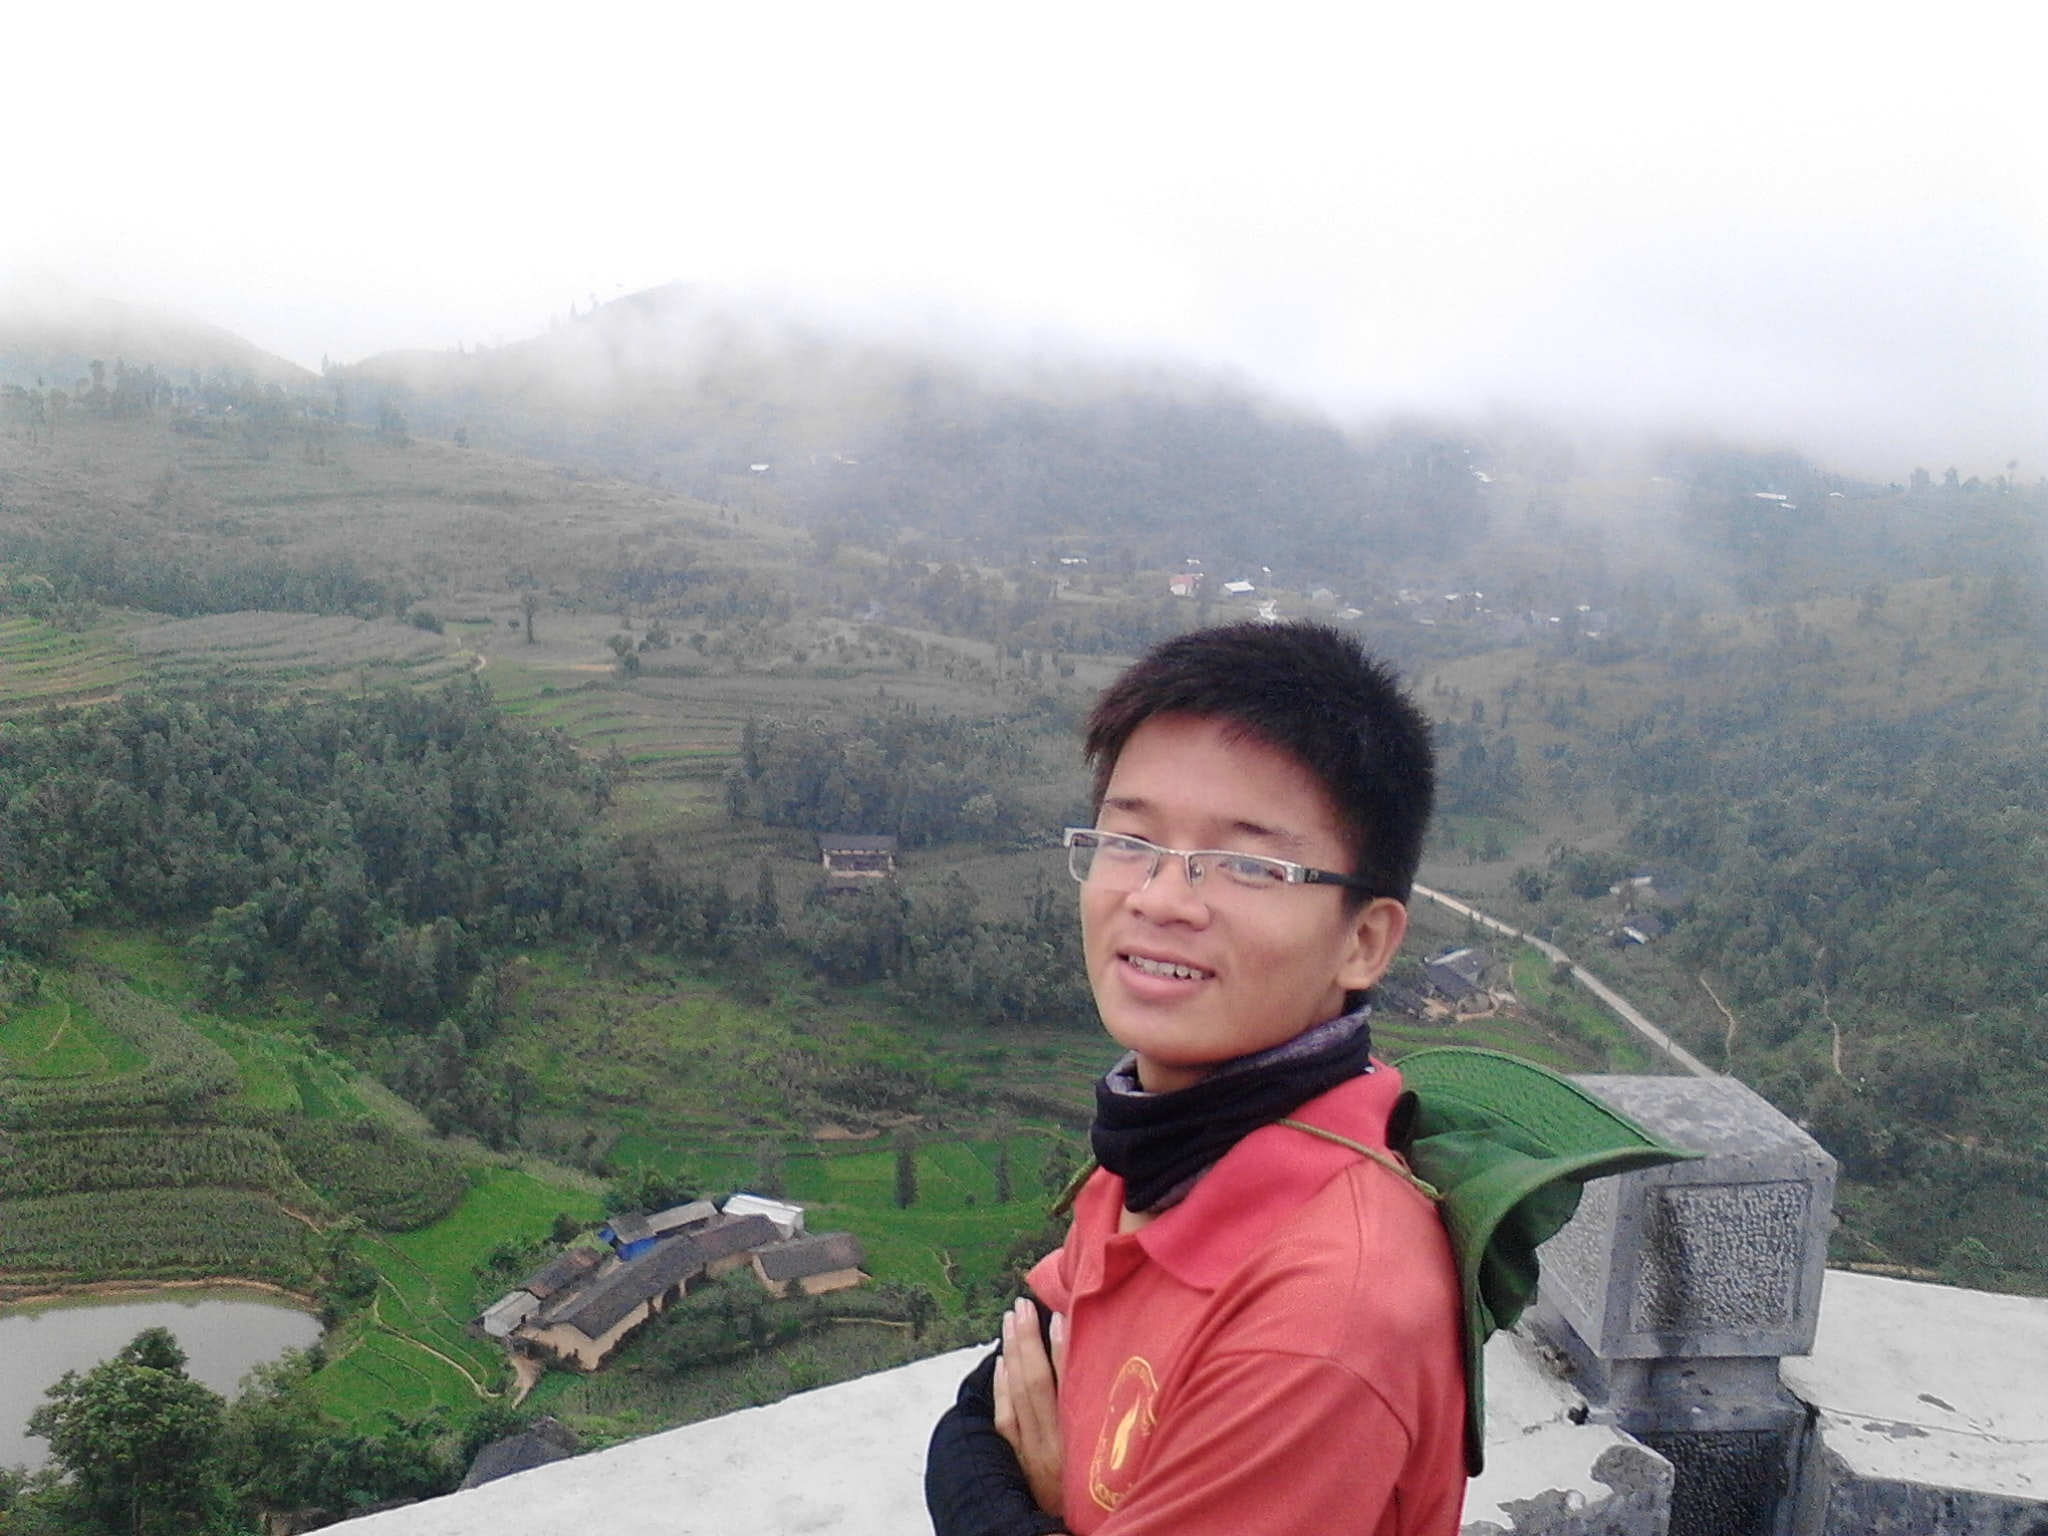 Go to hieu nguyen's profile